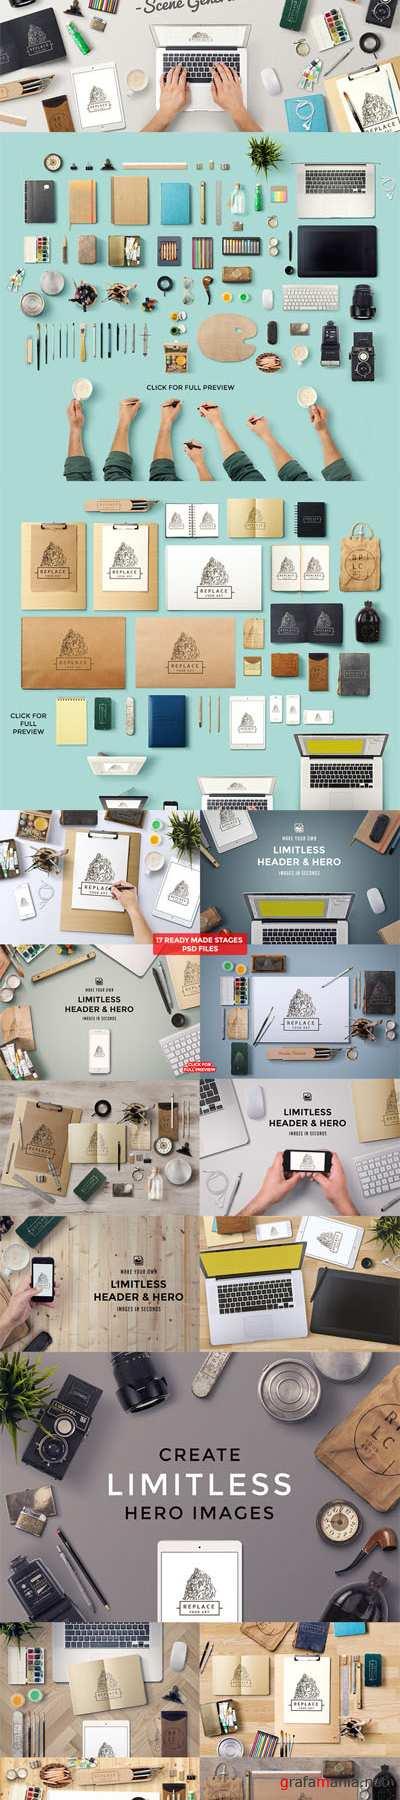 CreativeMarket - Art Equipments Scene Generator V2 83407